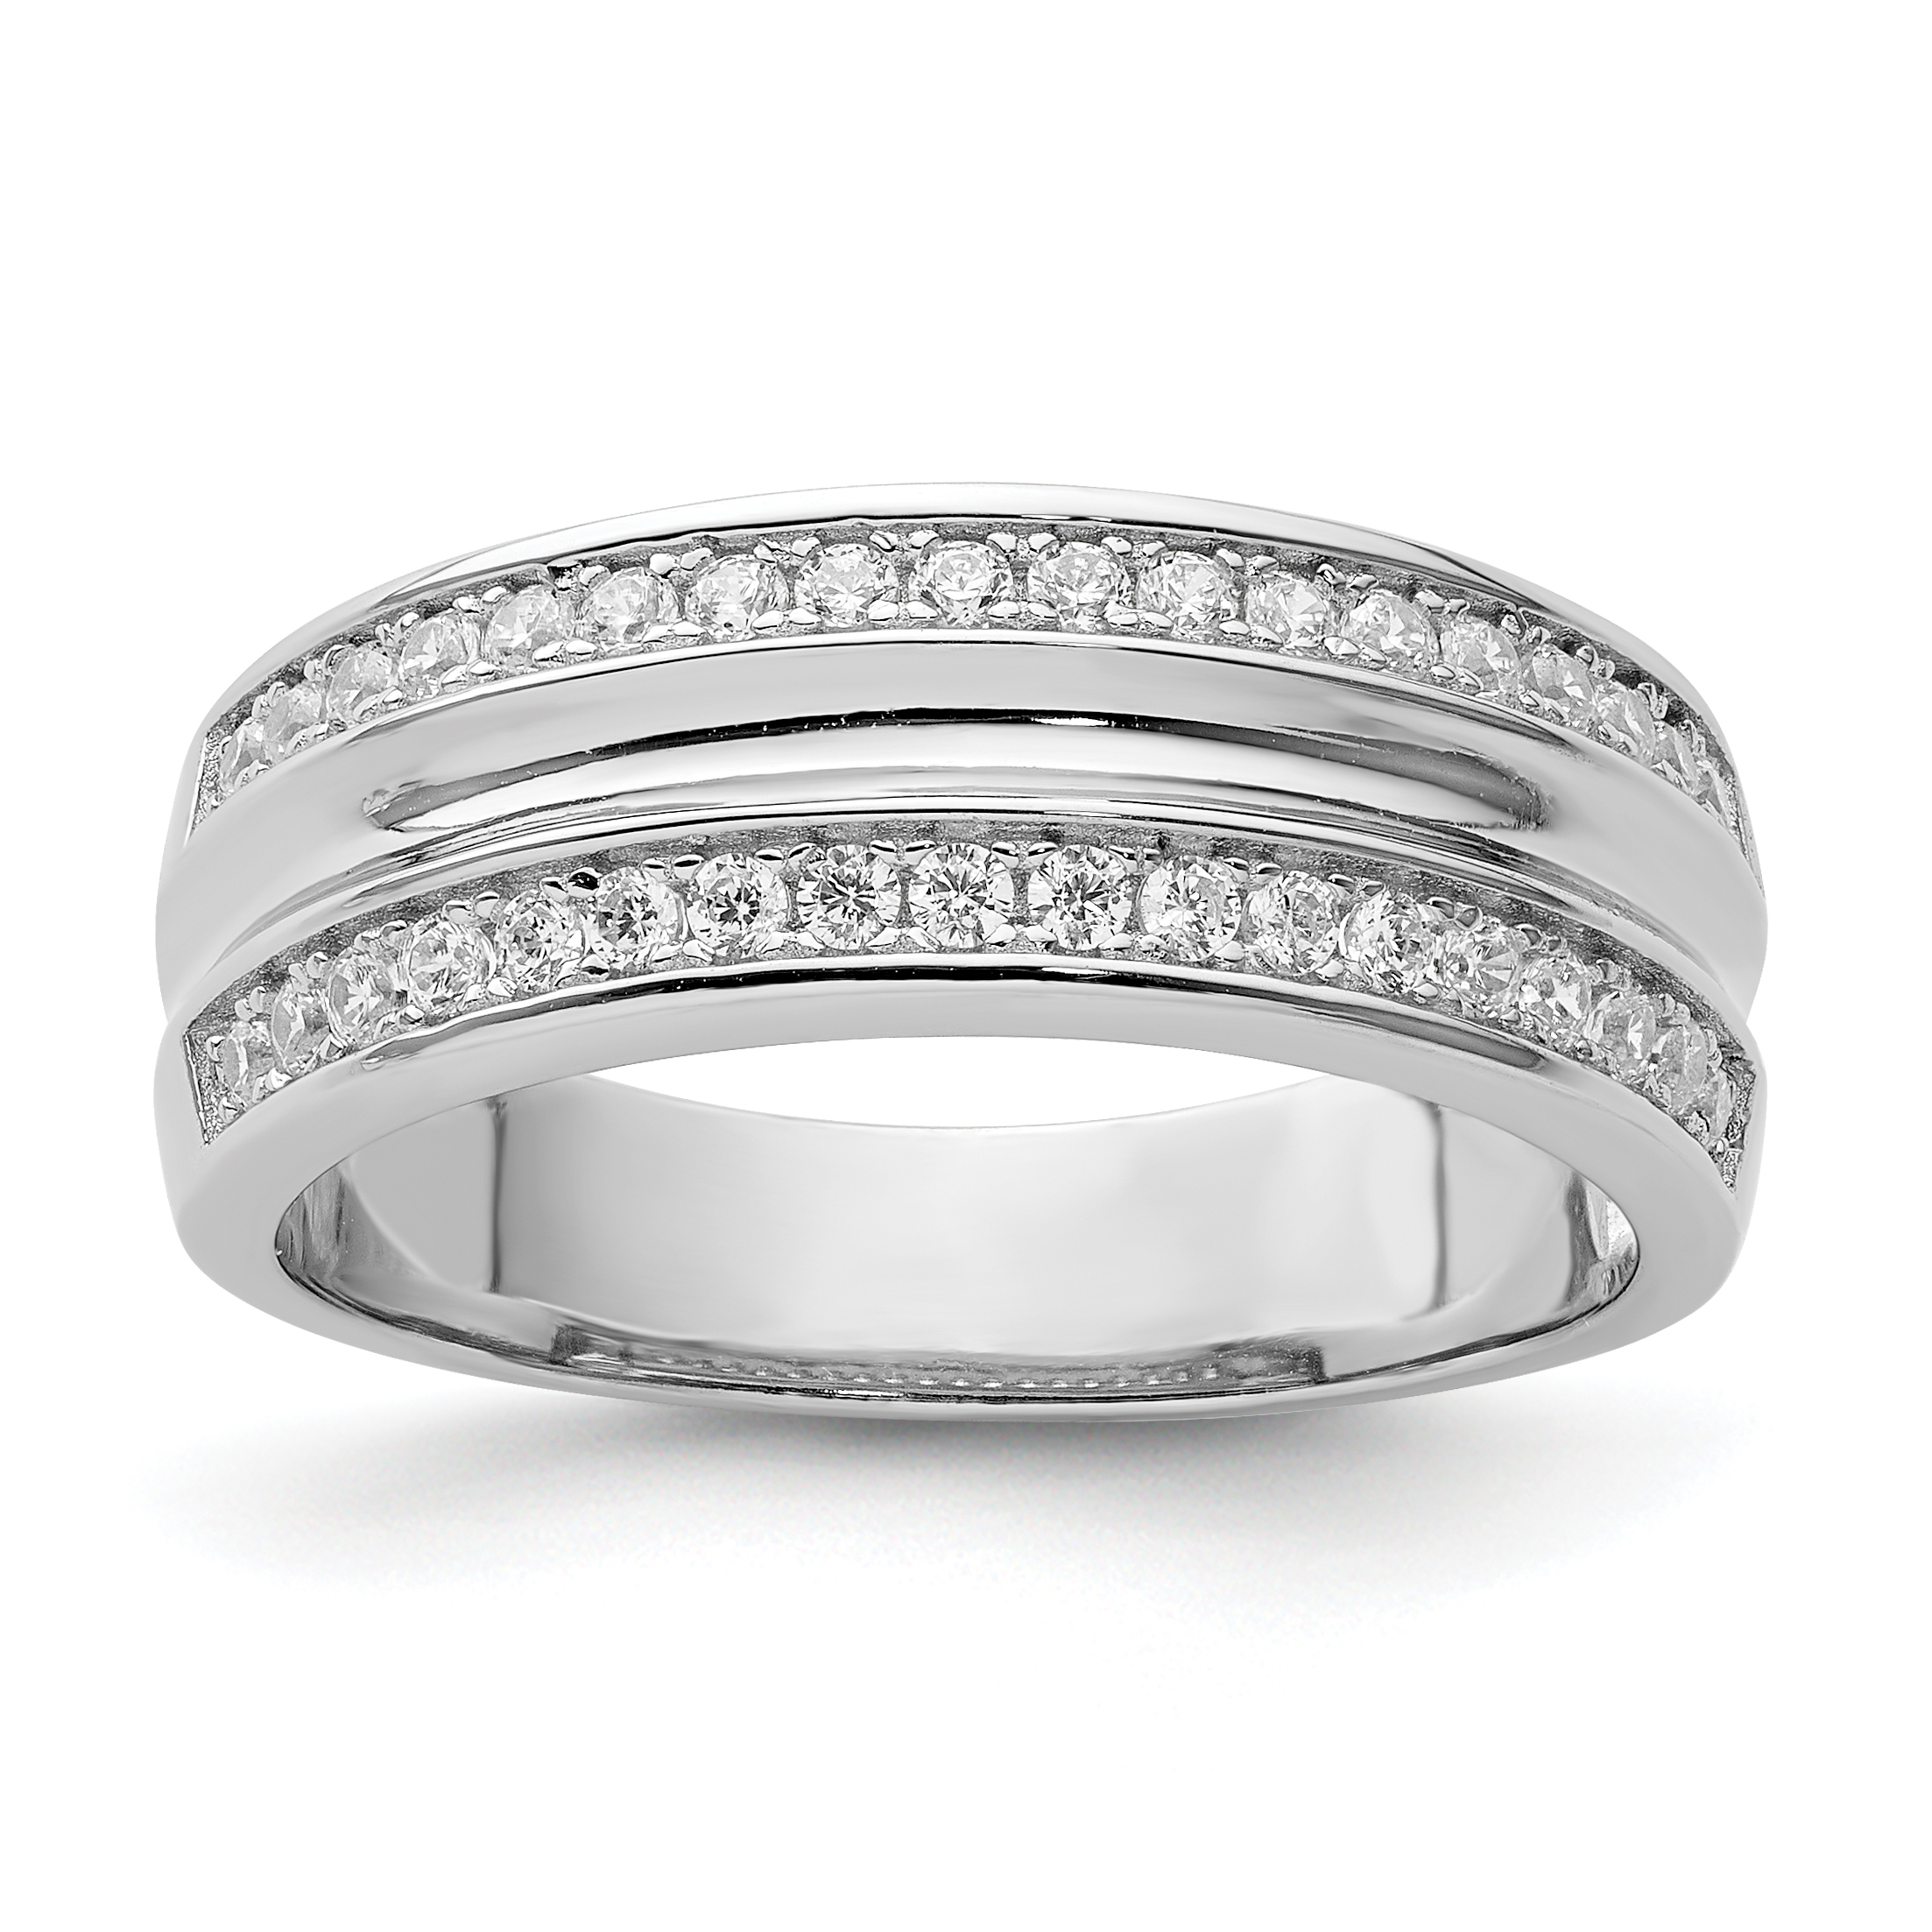 penang malaysia jewellery ring jewellers diamond men jewelry store s fine product